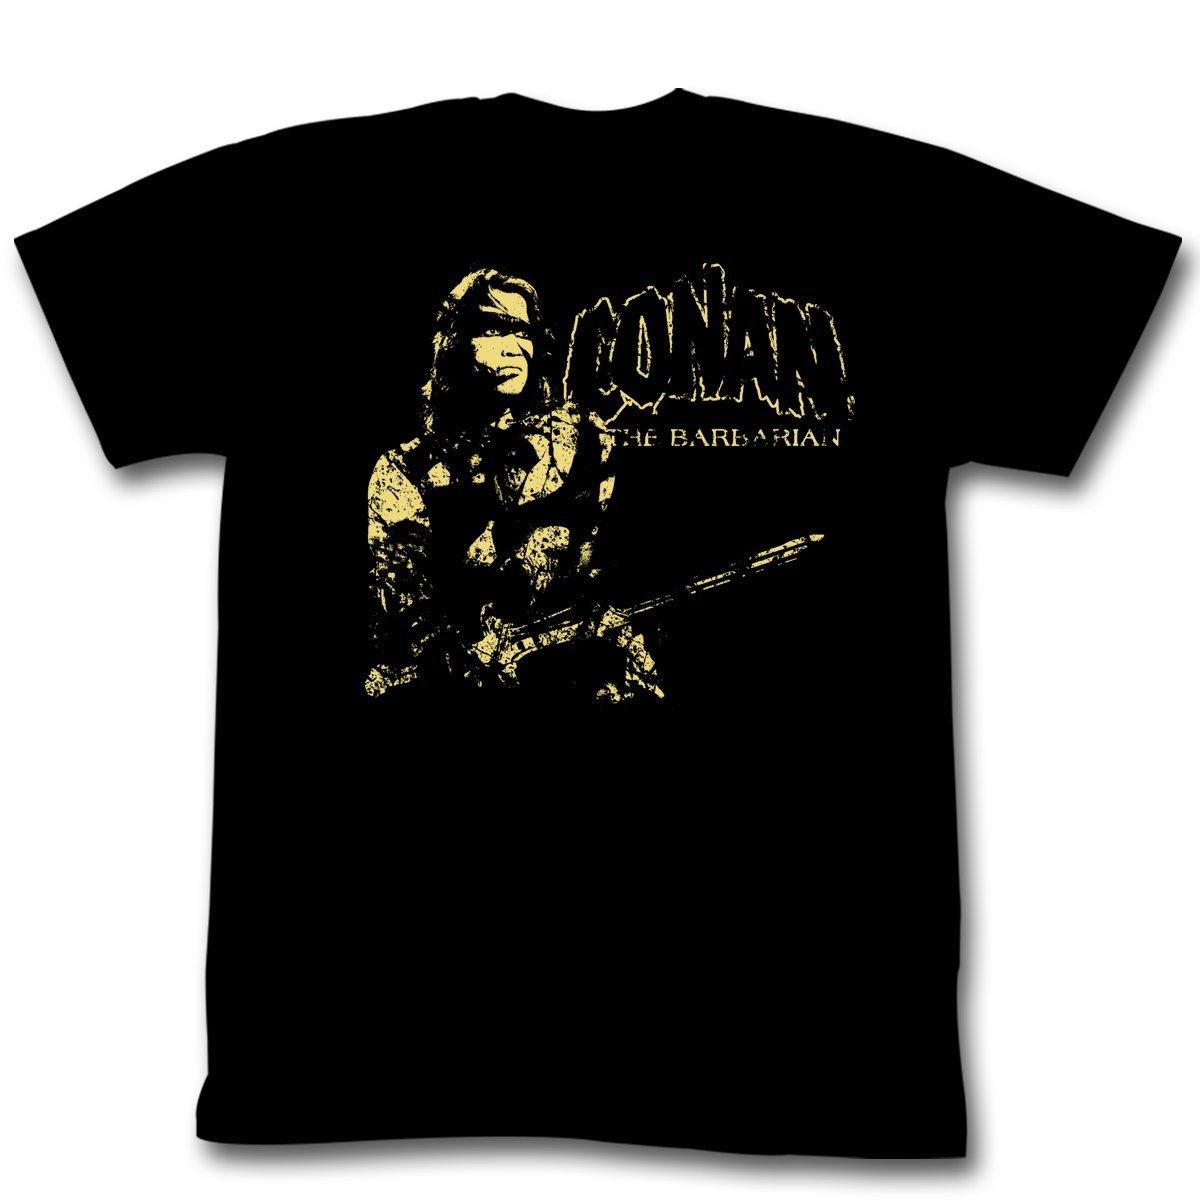 Shirt Conan The Barbarian The Man Distressed T-Shirt